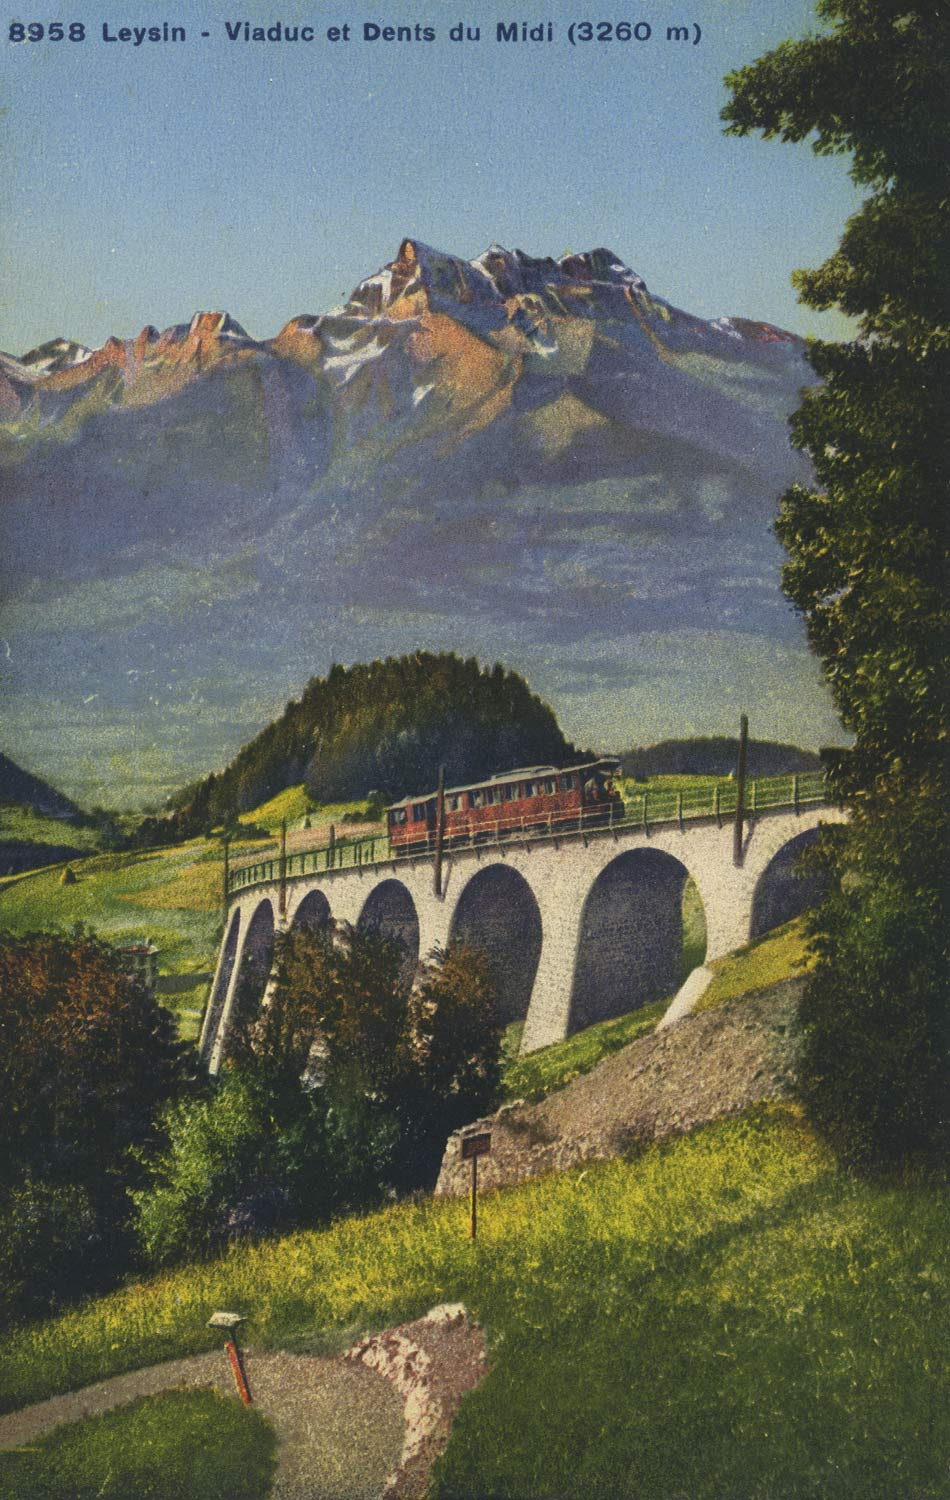 Leysin, Viaduc et Dents du Midi (3260m). © Phototypie Co., Neuchâtel